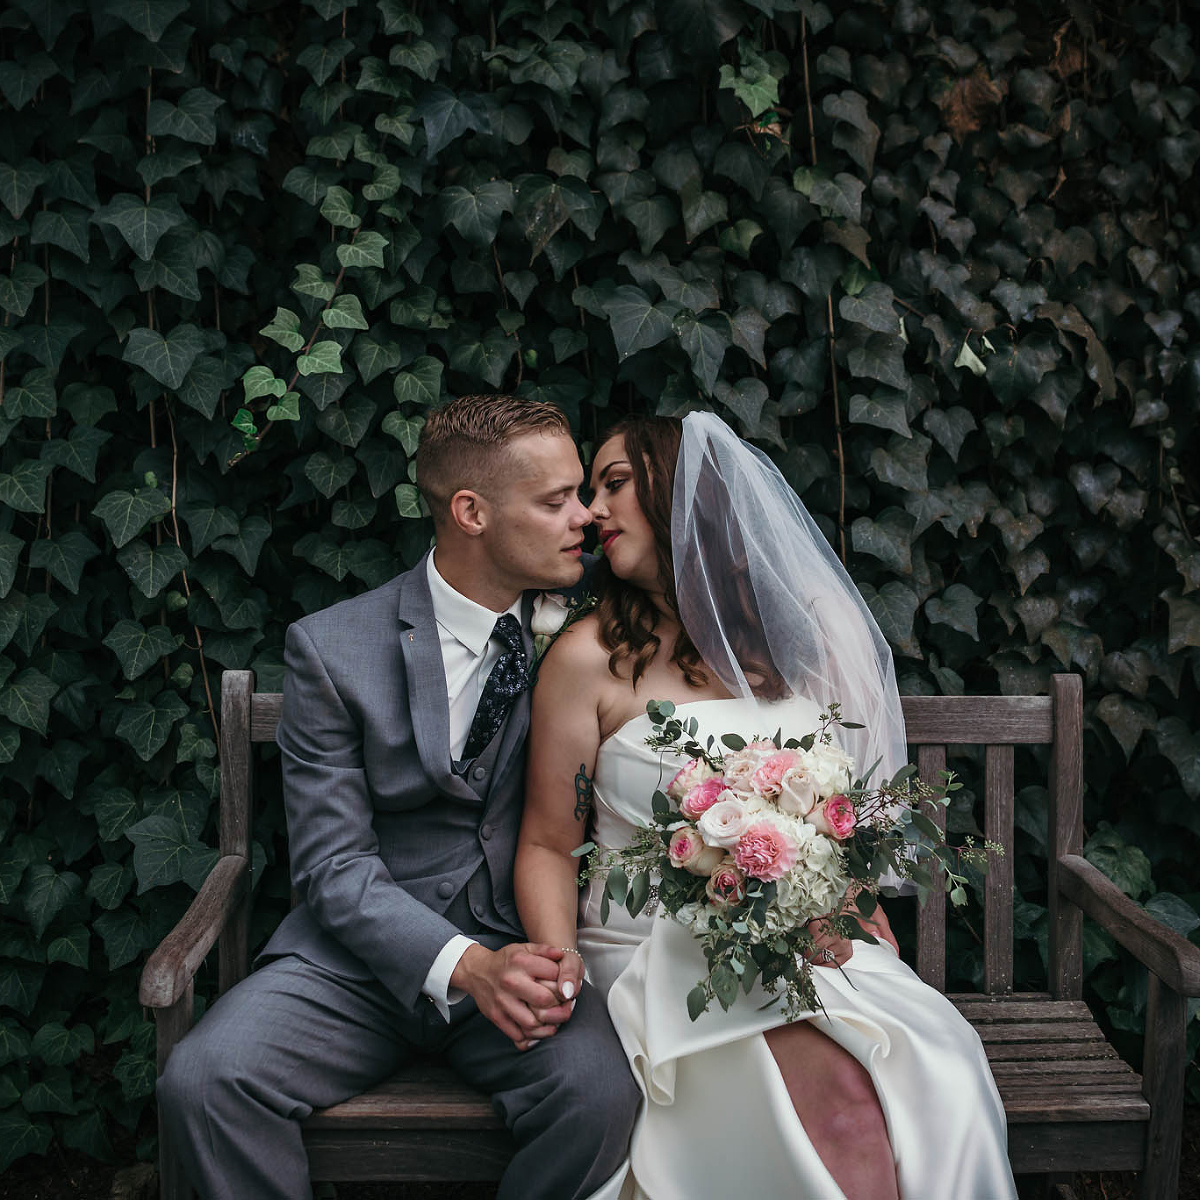 Bride and groom sit on bench together in front of foliage during Art Deco inspired summer wedding at the Foellinger-Freimann Botanical Conservatory in Fort Wayne, Indiana